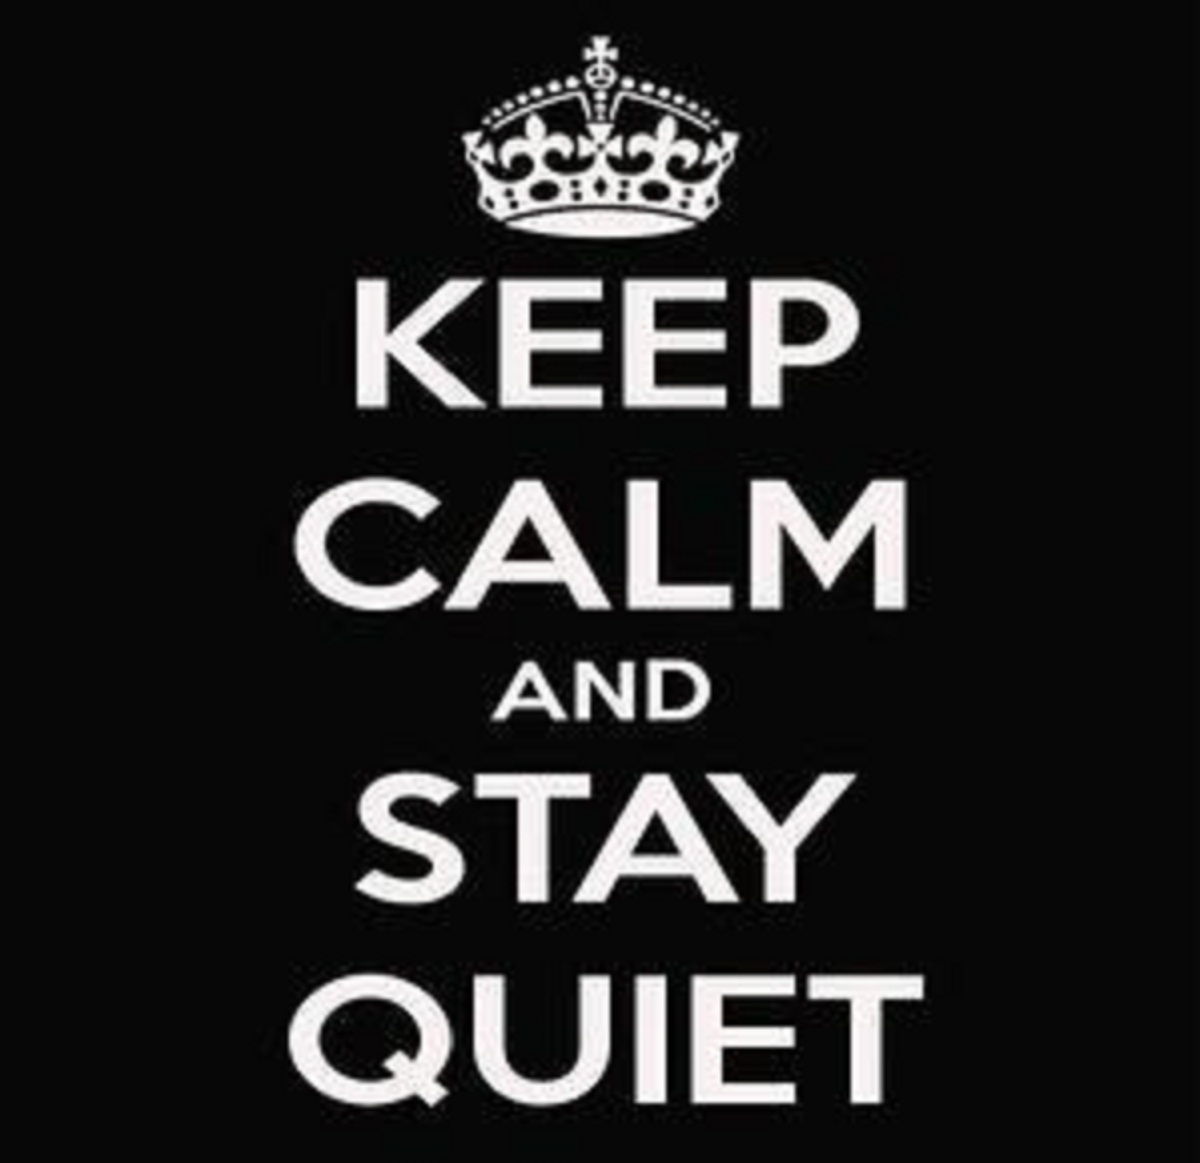 Keep calm and stay quiet: the Silent Weekend logo